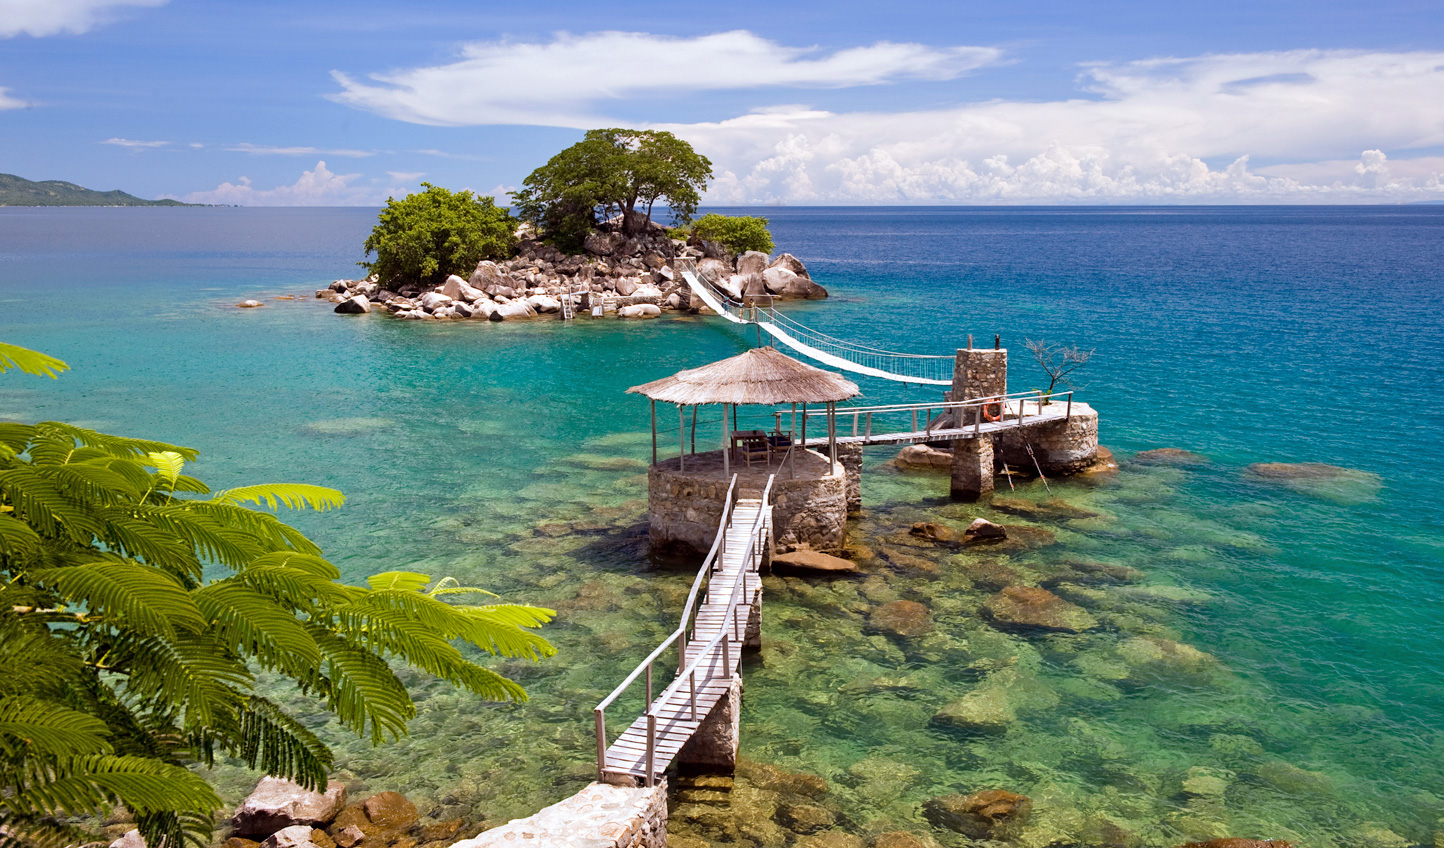 Escape to the crystal clear waters of Lake Malawi